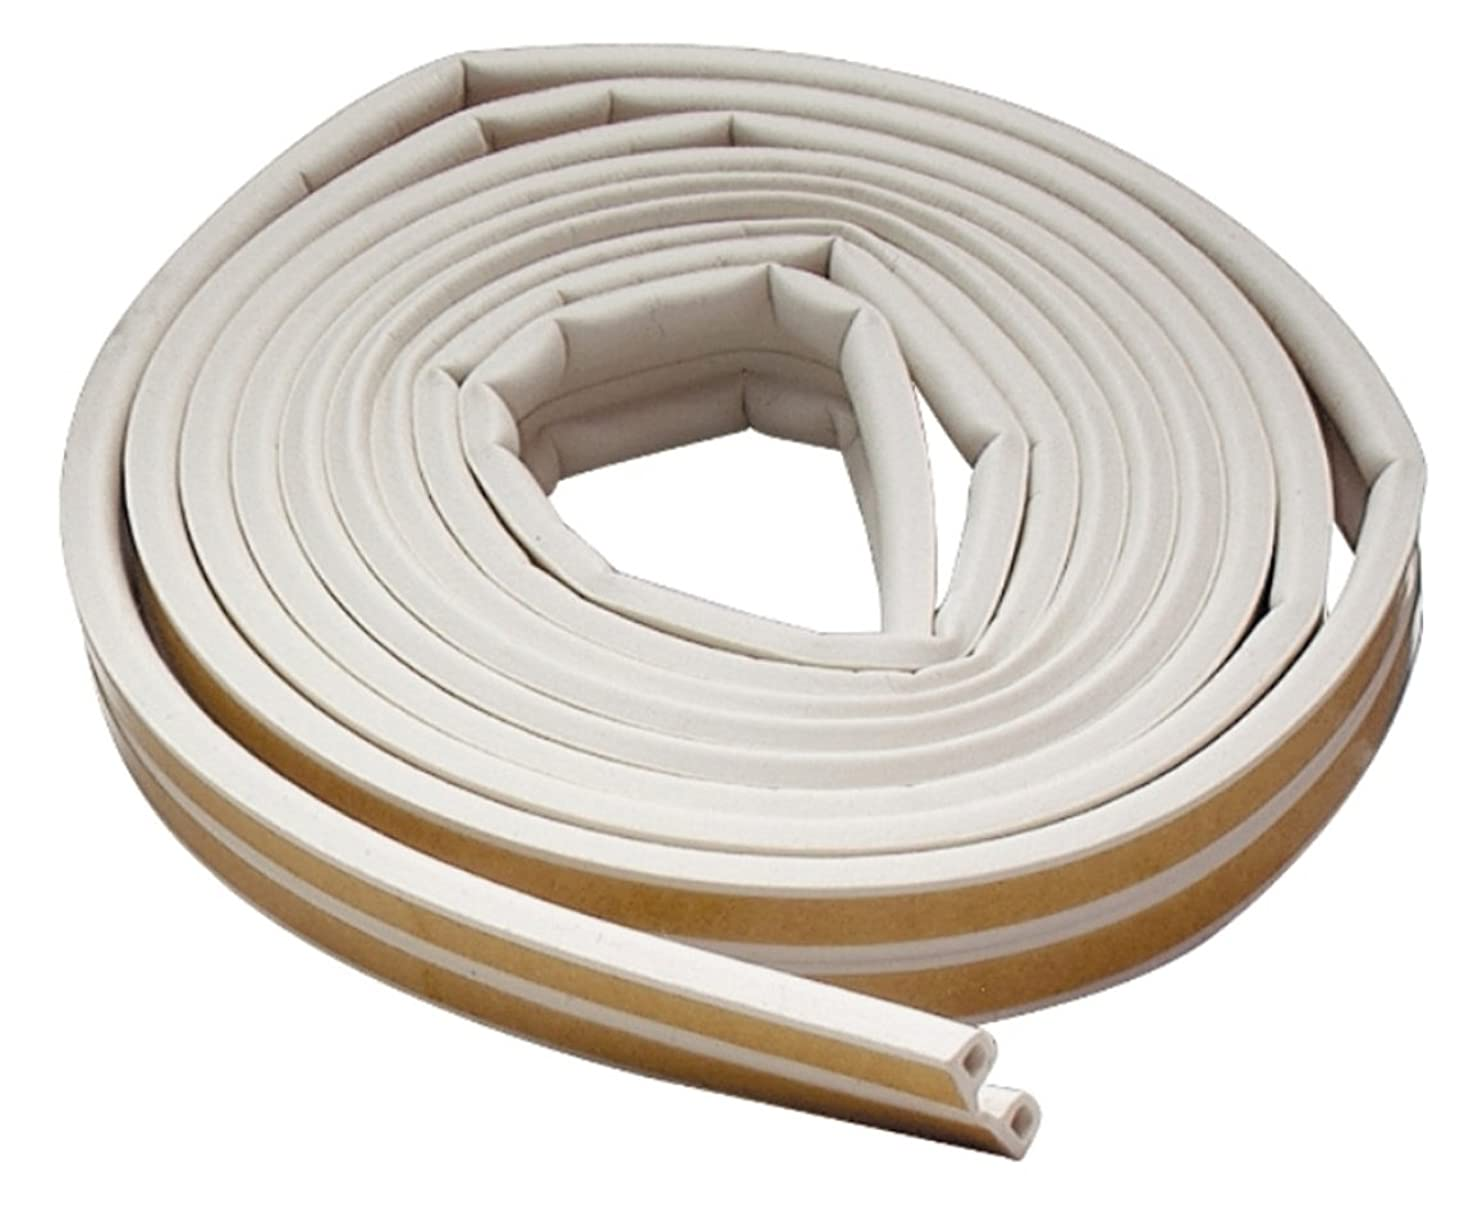 M-D Building Products 2576 M-D 0 All Climate P-Profile Subzero Weather-Strip, 17 Ft L X 3/8 in W 7/32 in T, Epdm Rubber, White